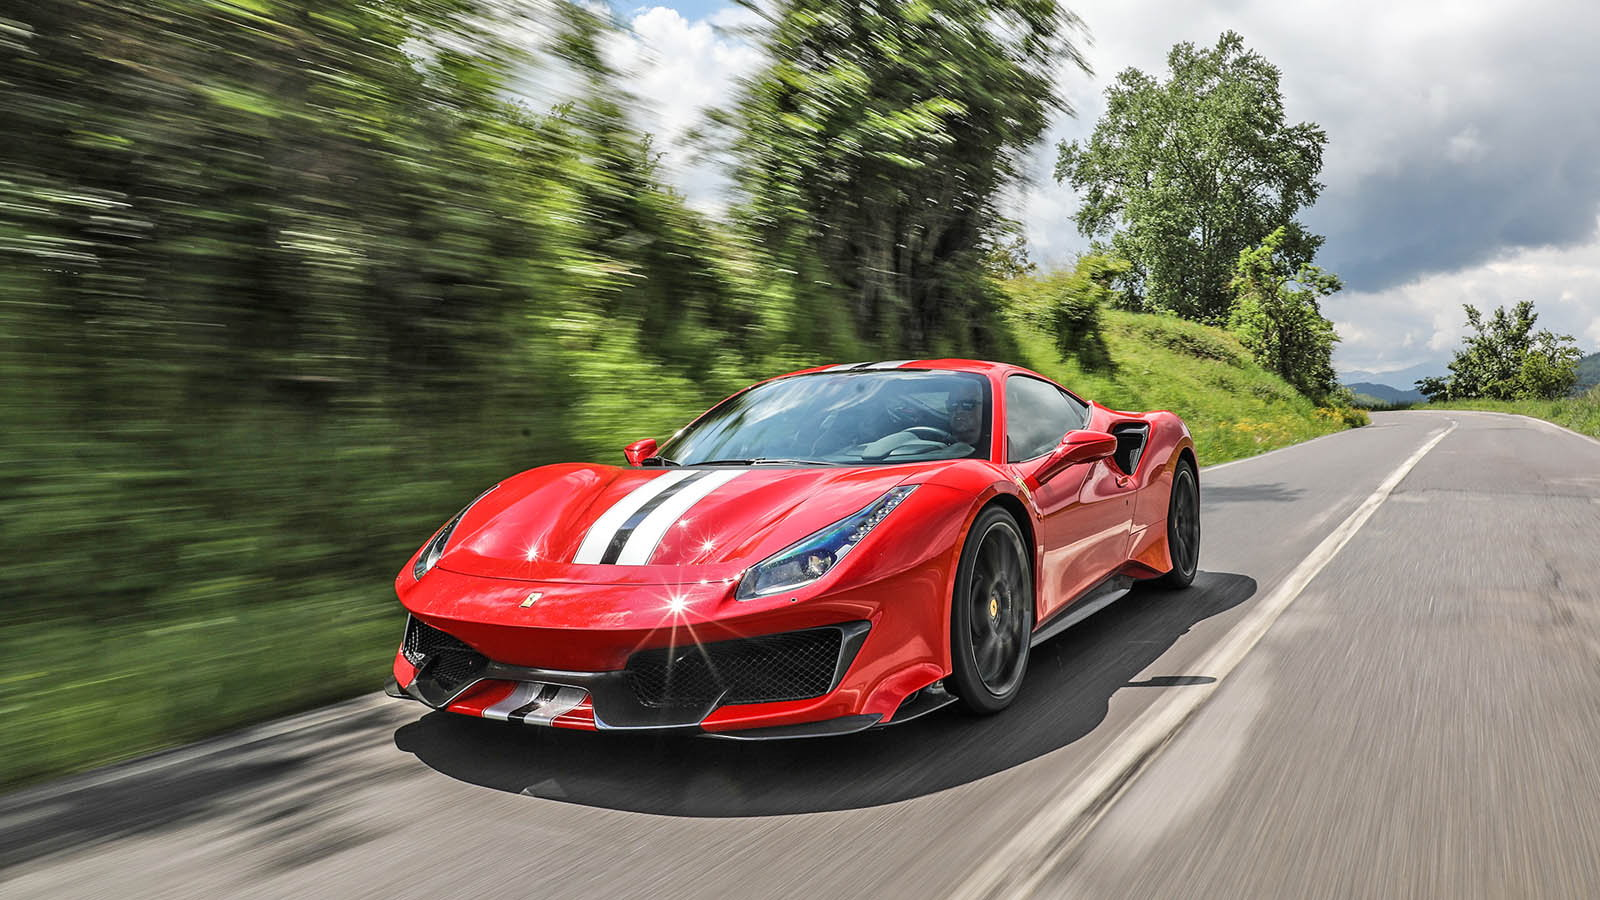 Everything About the 2019 Ferrari 488 Pista